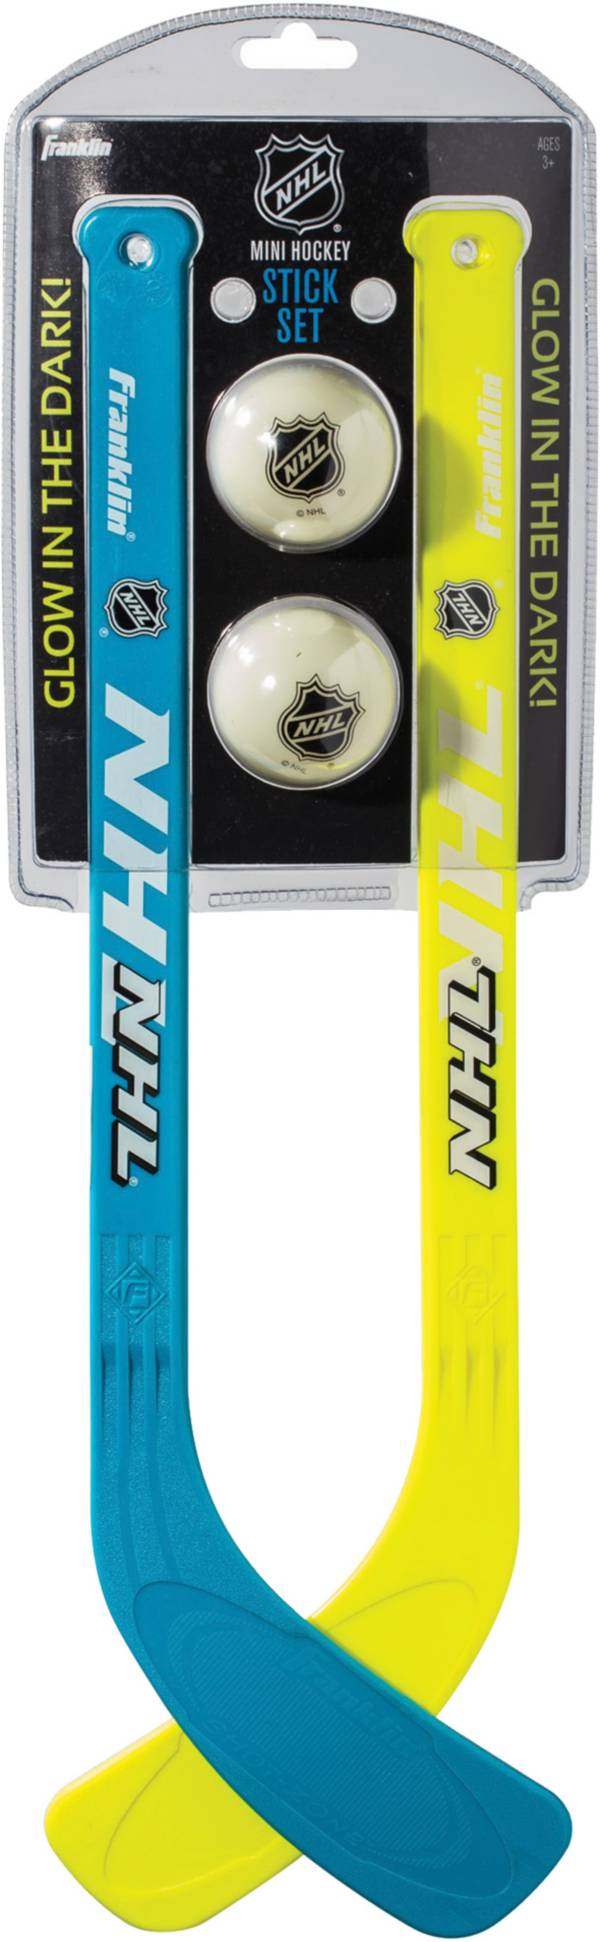 Franklin Glow in the Dark Mini Street Hockey Player Stick and Ball Set product image